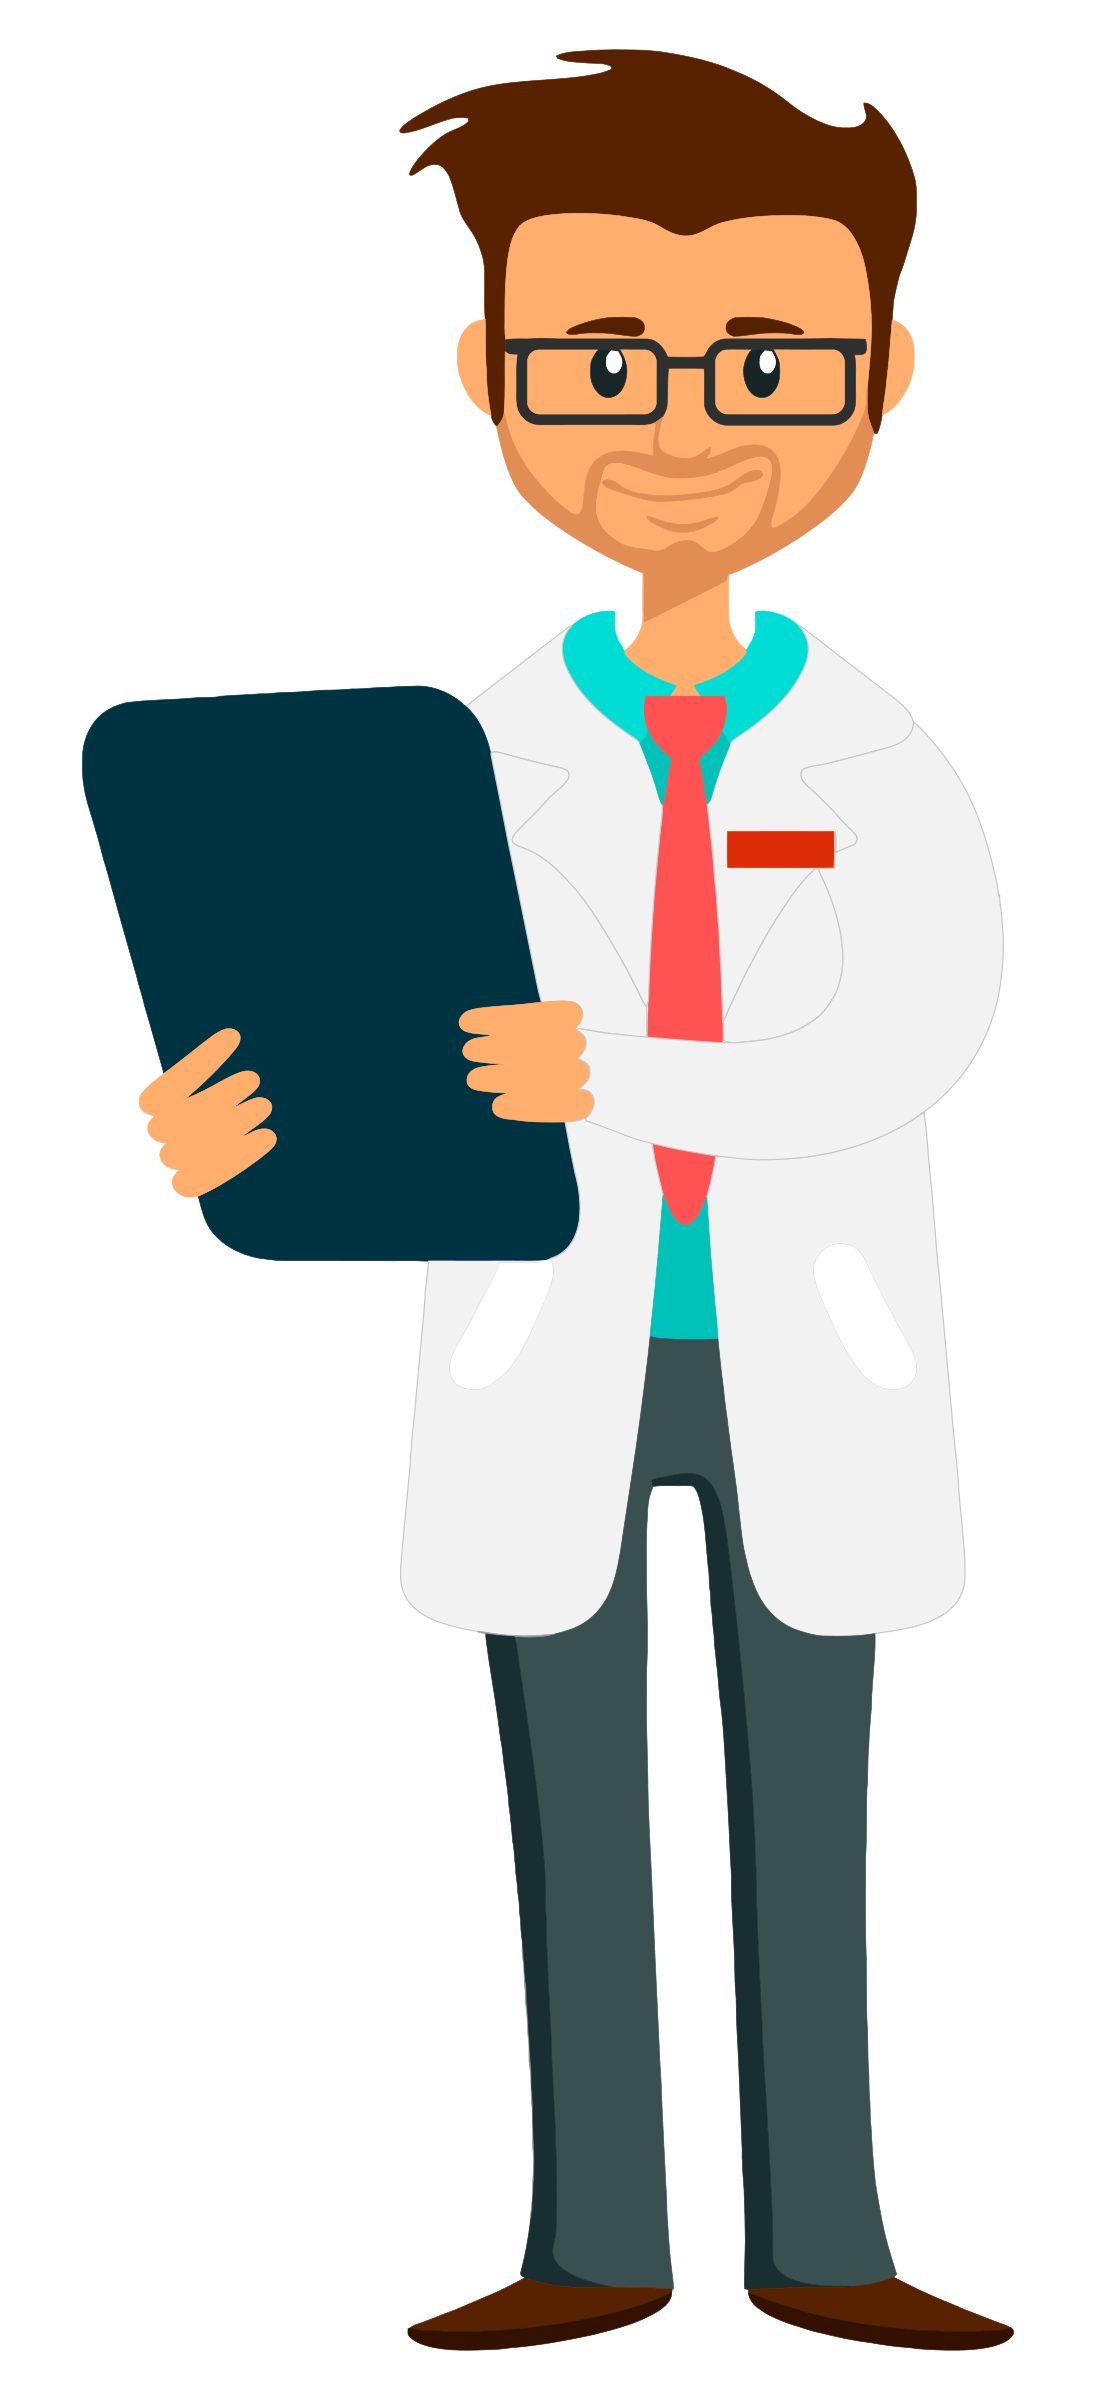 Doctor holding clipboard - fixed arm and whiter coat by The Martin